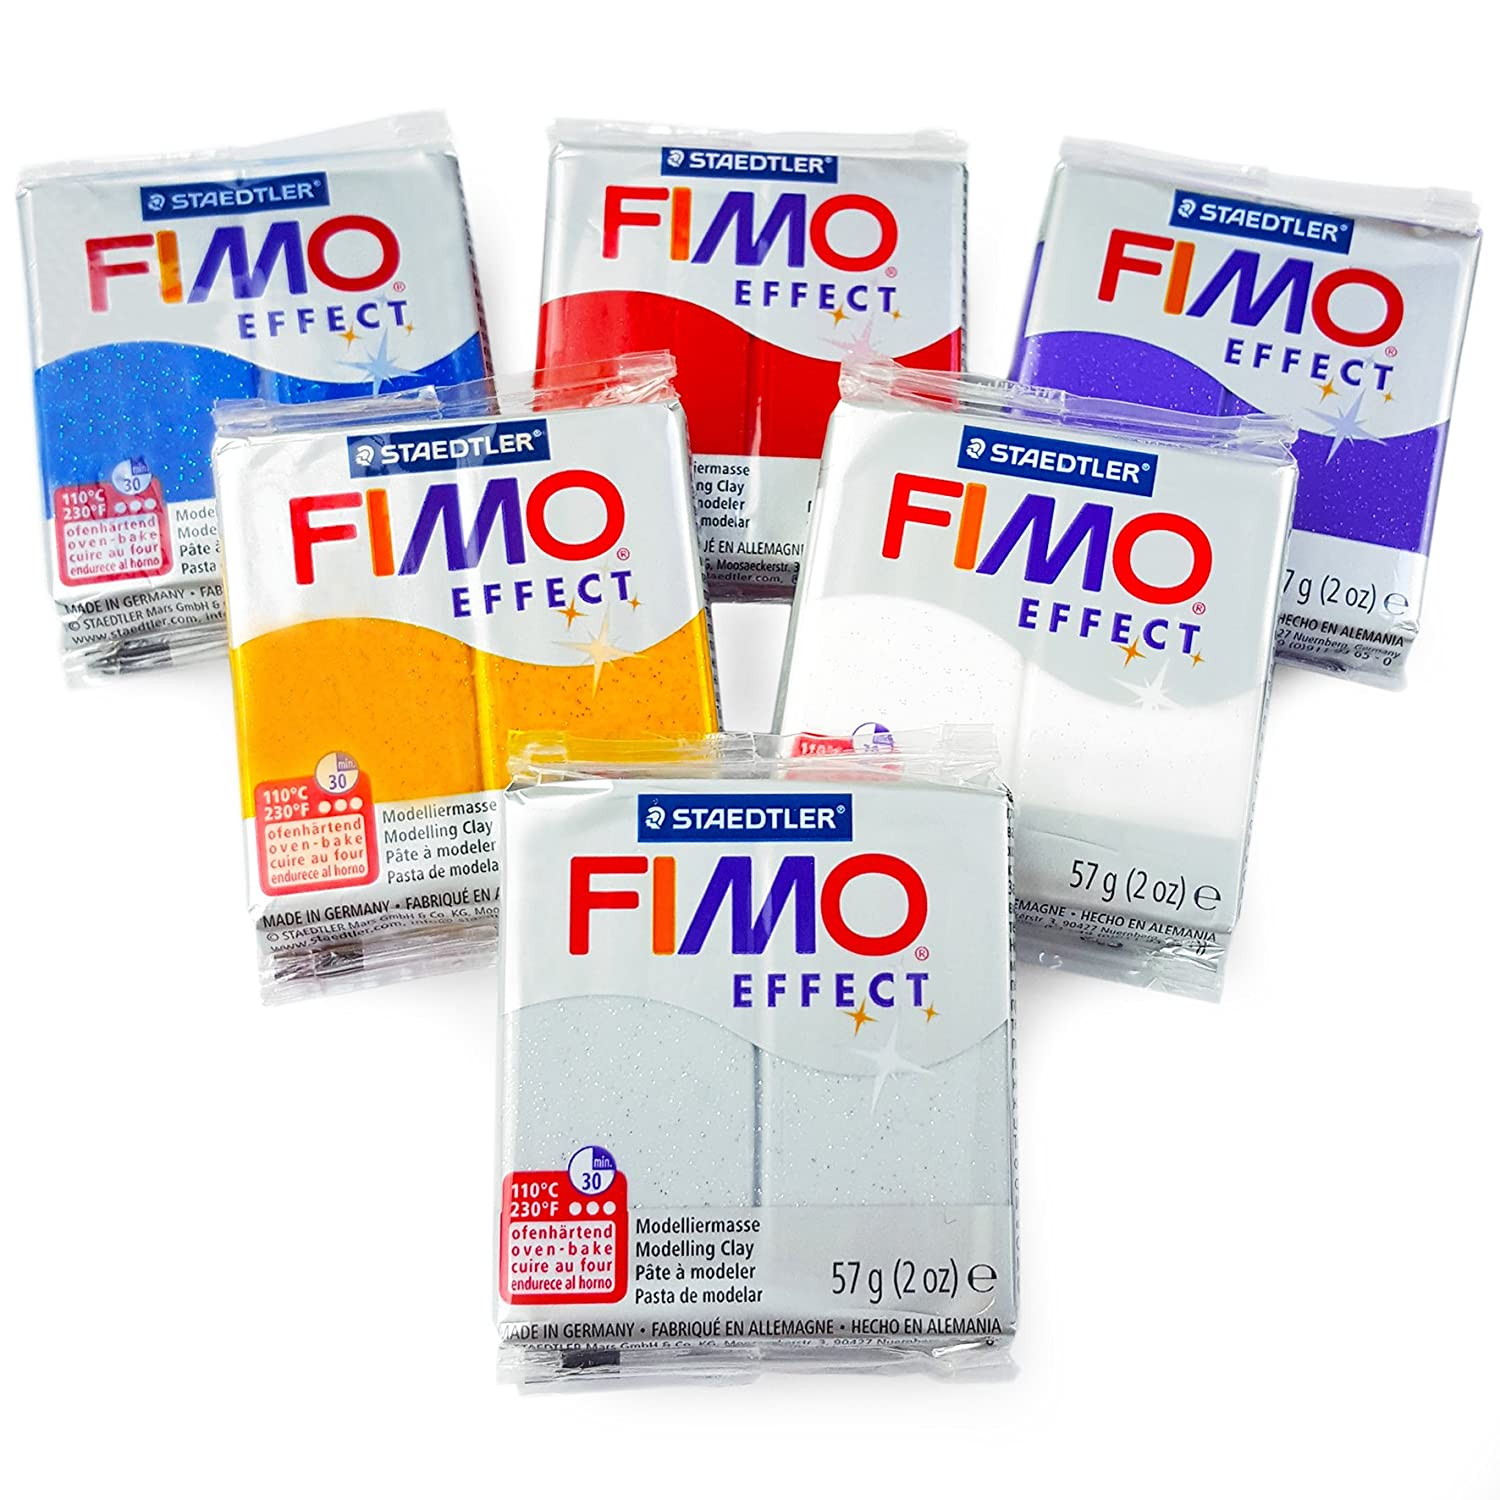 FIMO Effect Polymer Oven Modelling Clay 57g Set of 6 Glitter Finish